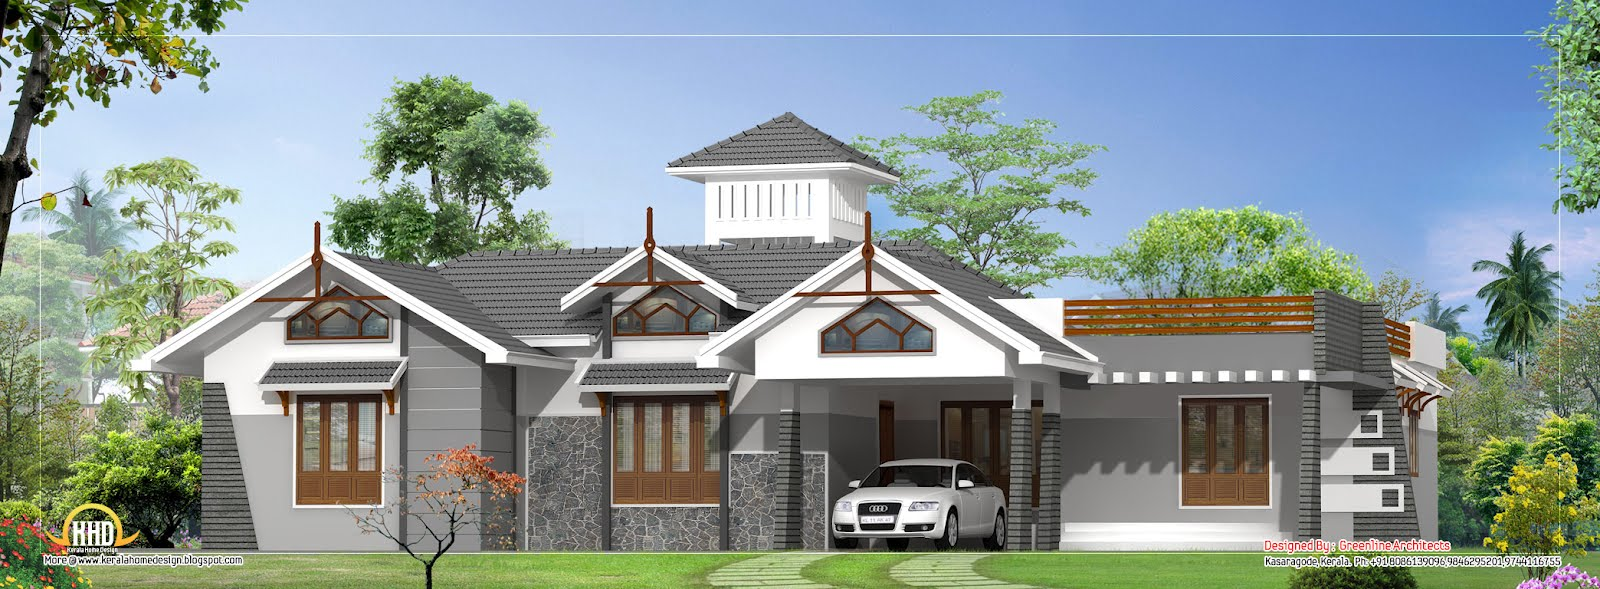 Dd08antonio design home single floor house plan 2630 sq for 3000 sq ft house plans kerala